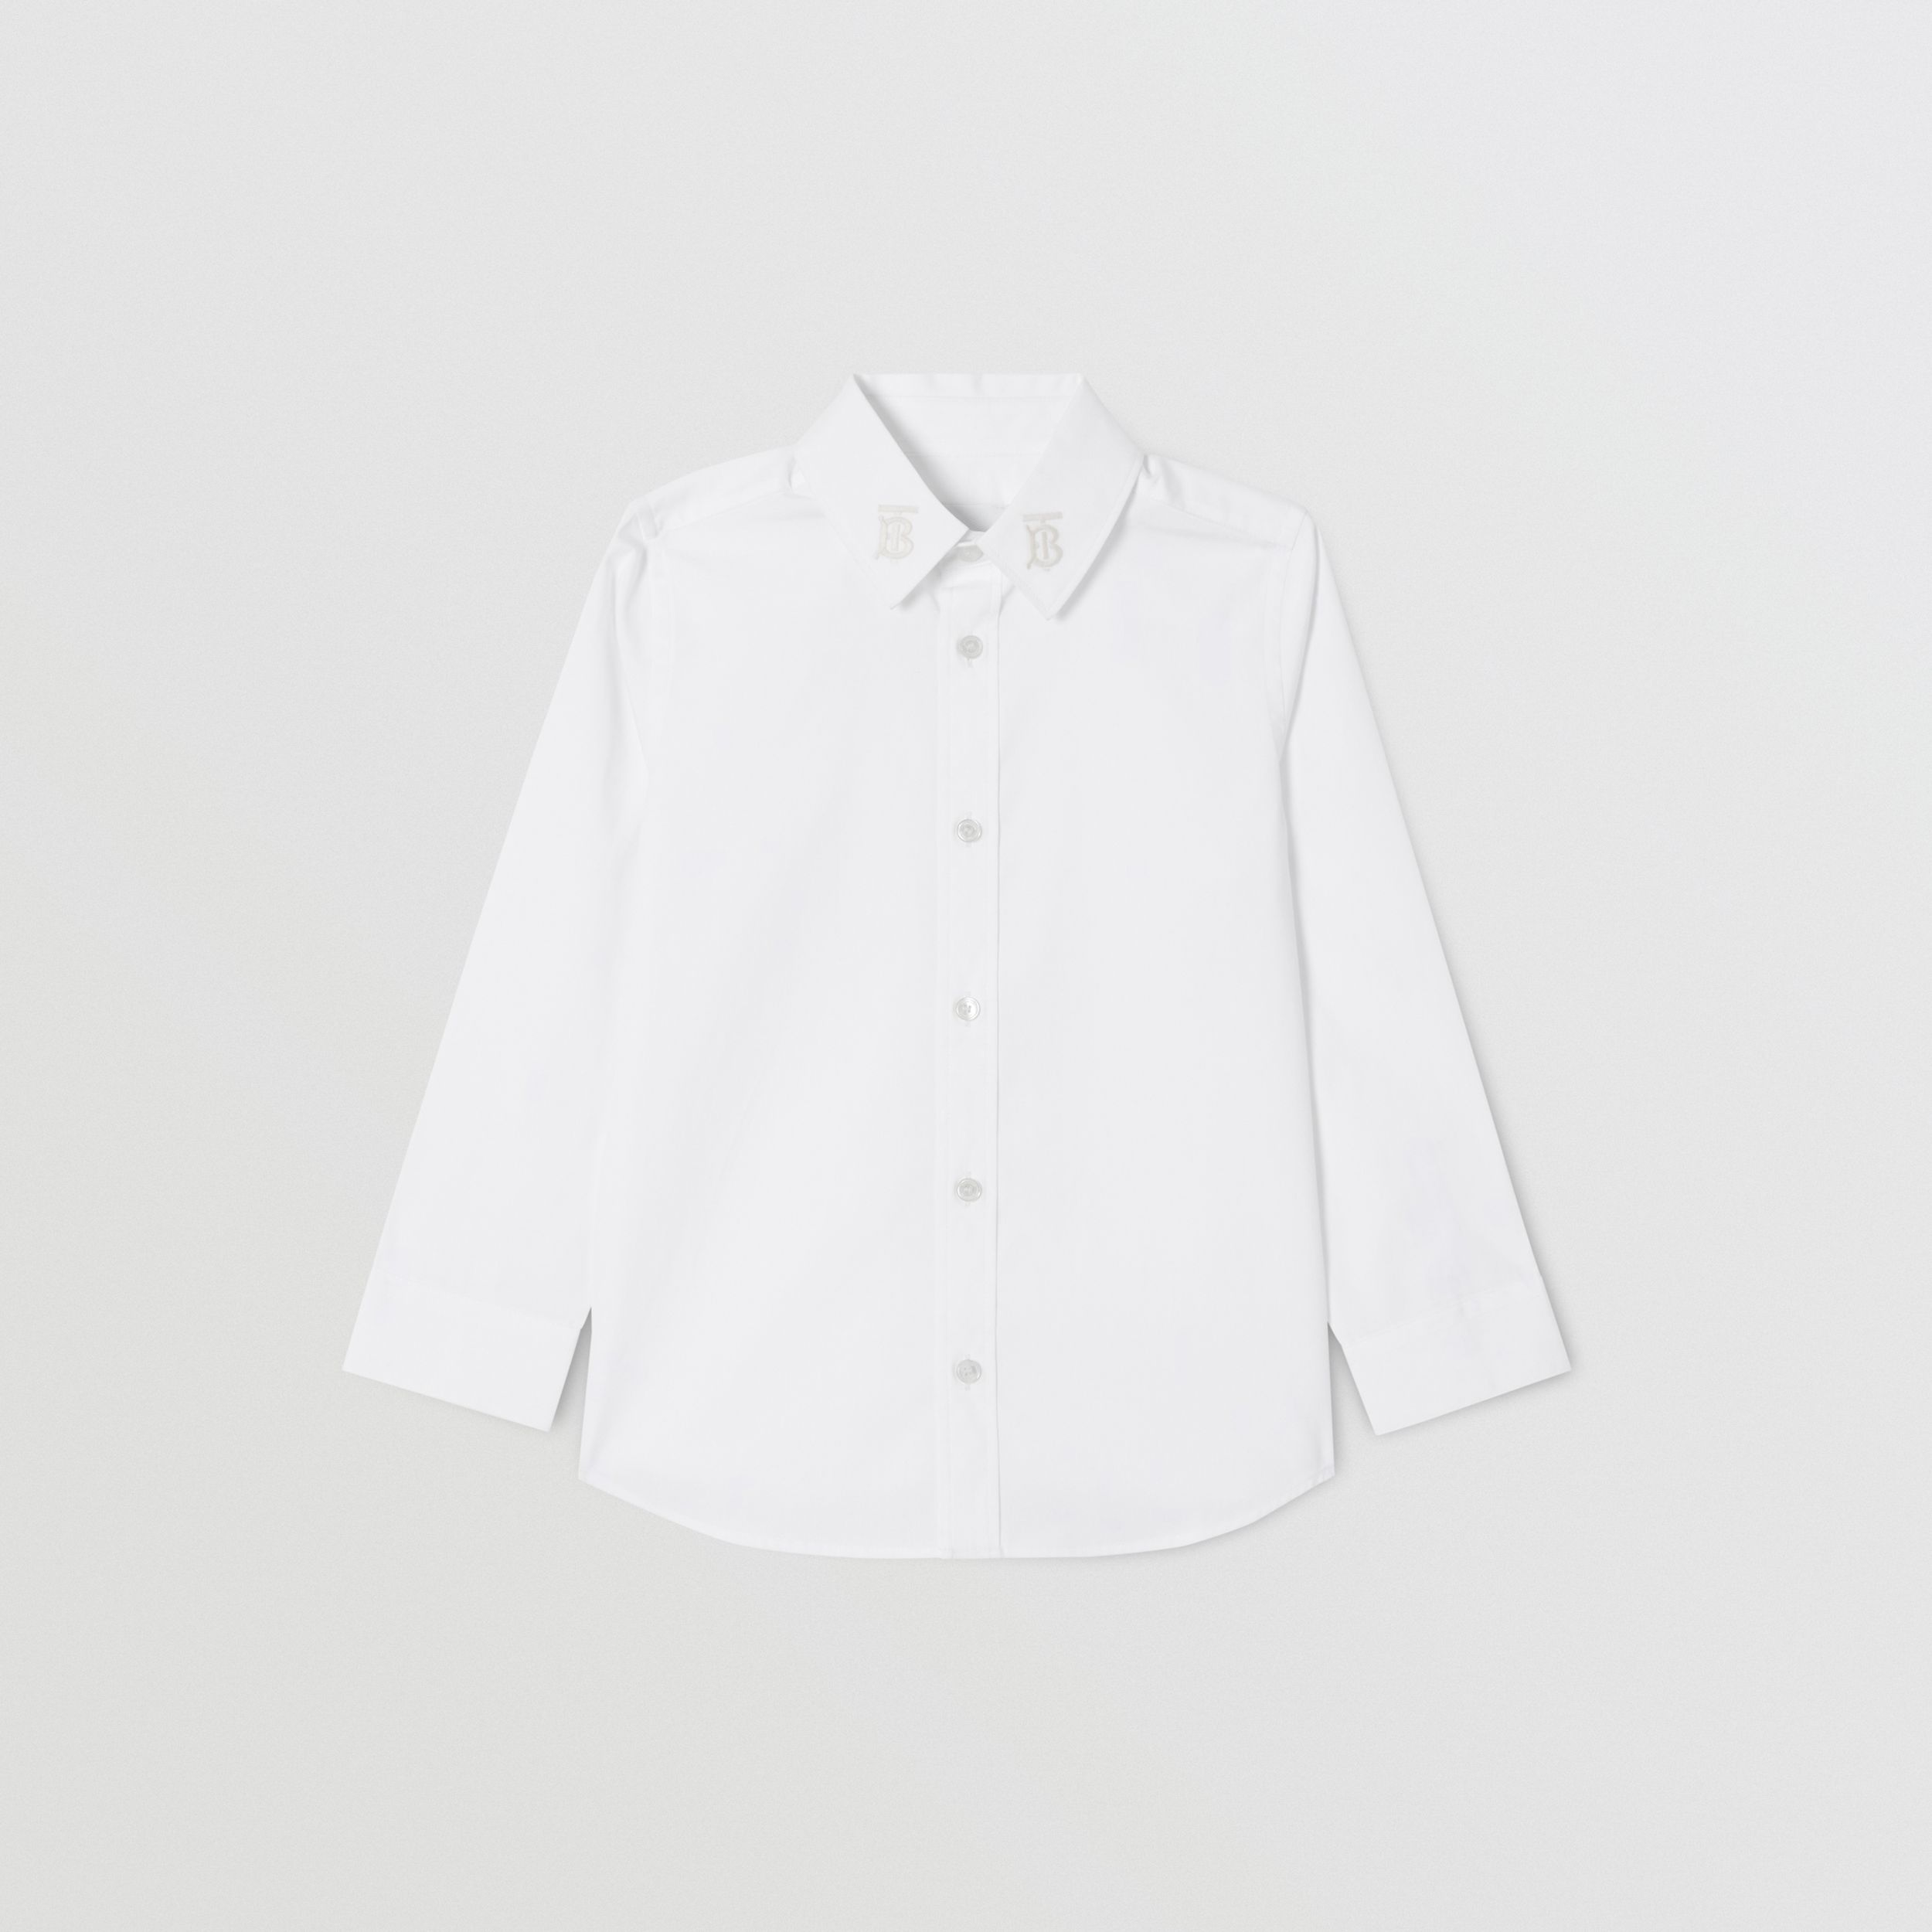 Monogram Motif Stretch Cotton Poplin Shirt | Burberry United Kingdom - 1